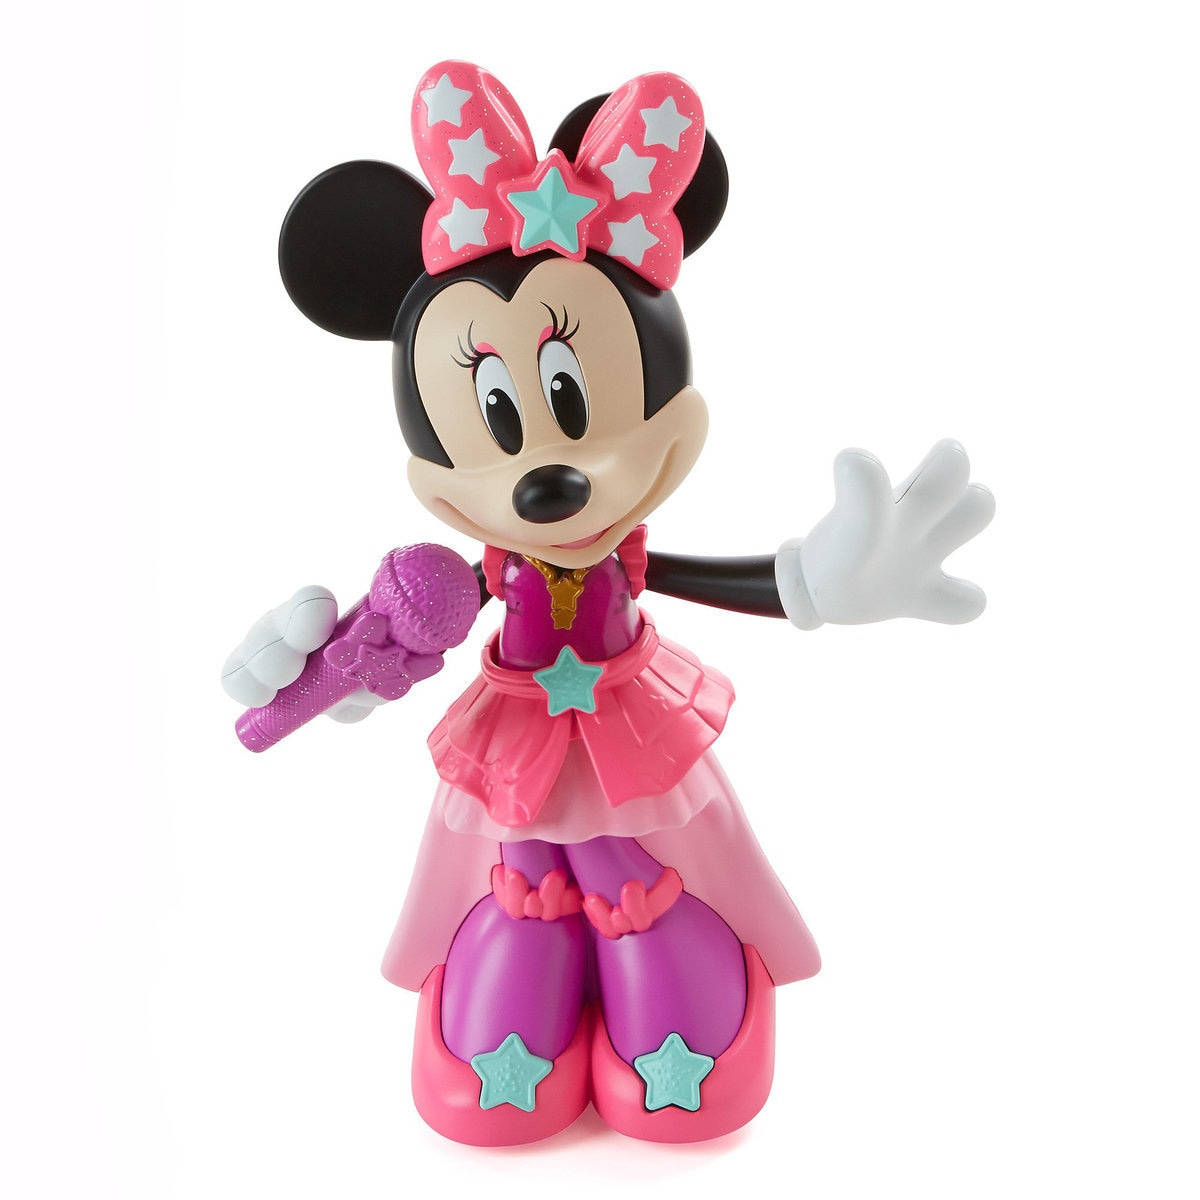 4210b92837b02 Product Image of Minnie Mouse Pop Superstar Doll by Fisher-Price # 1